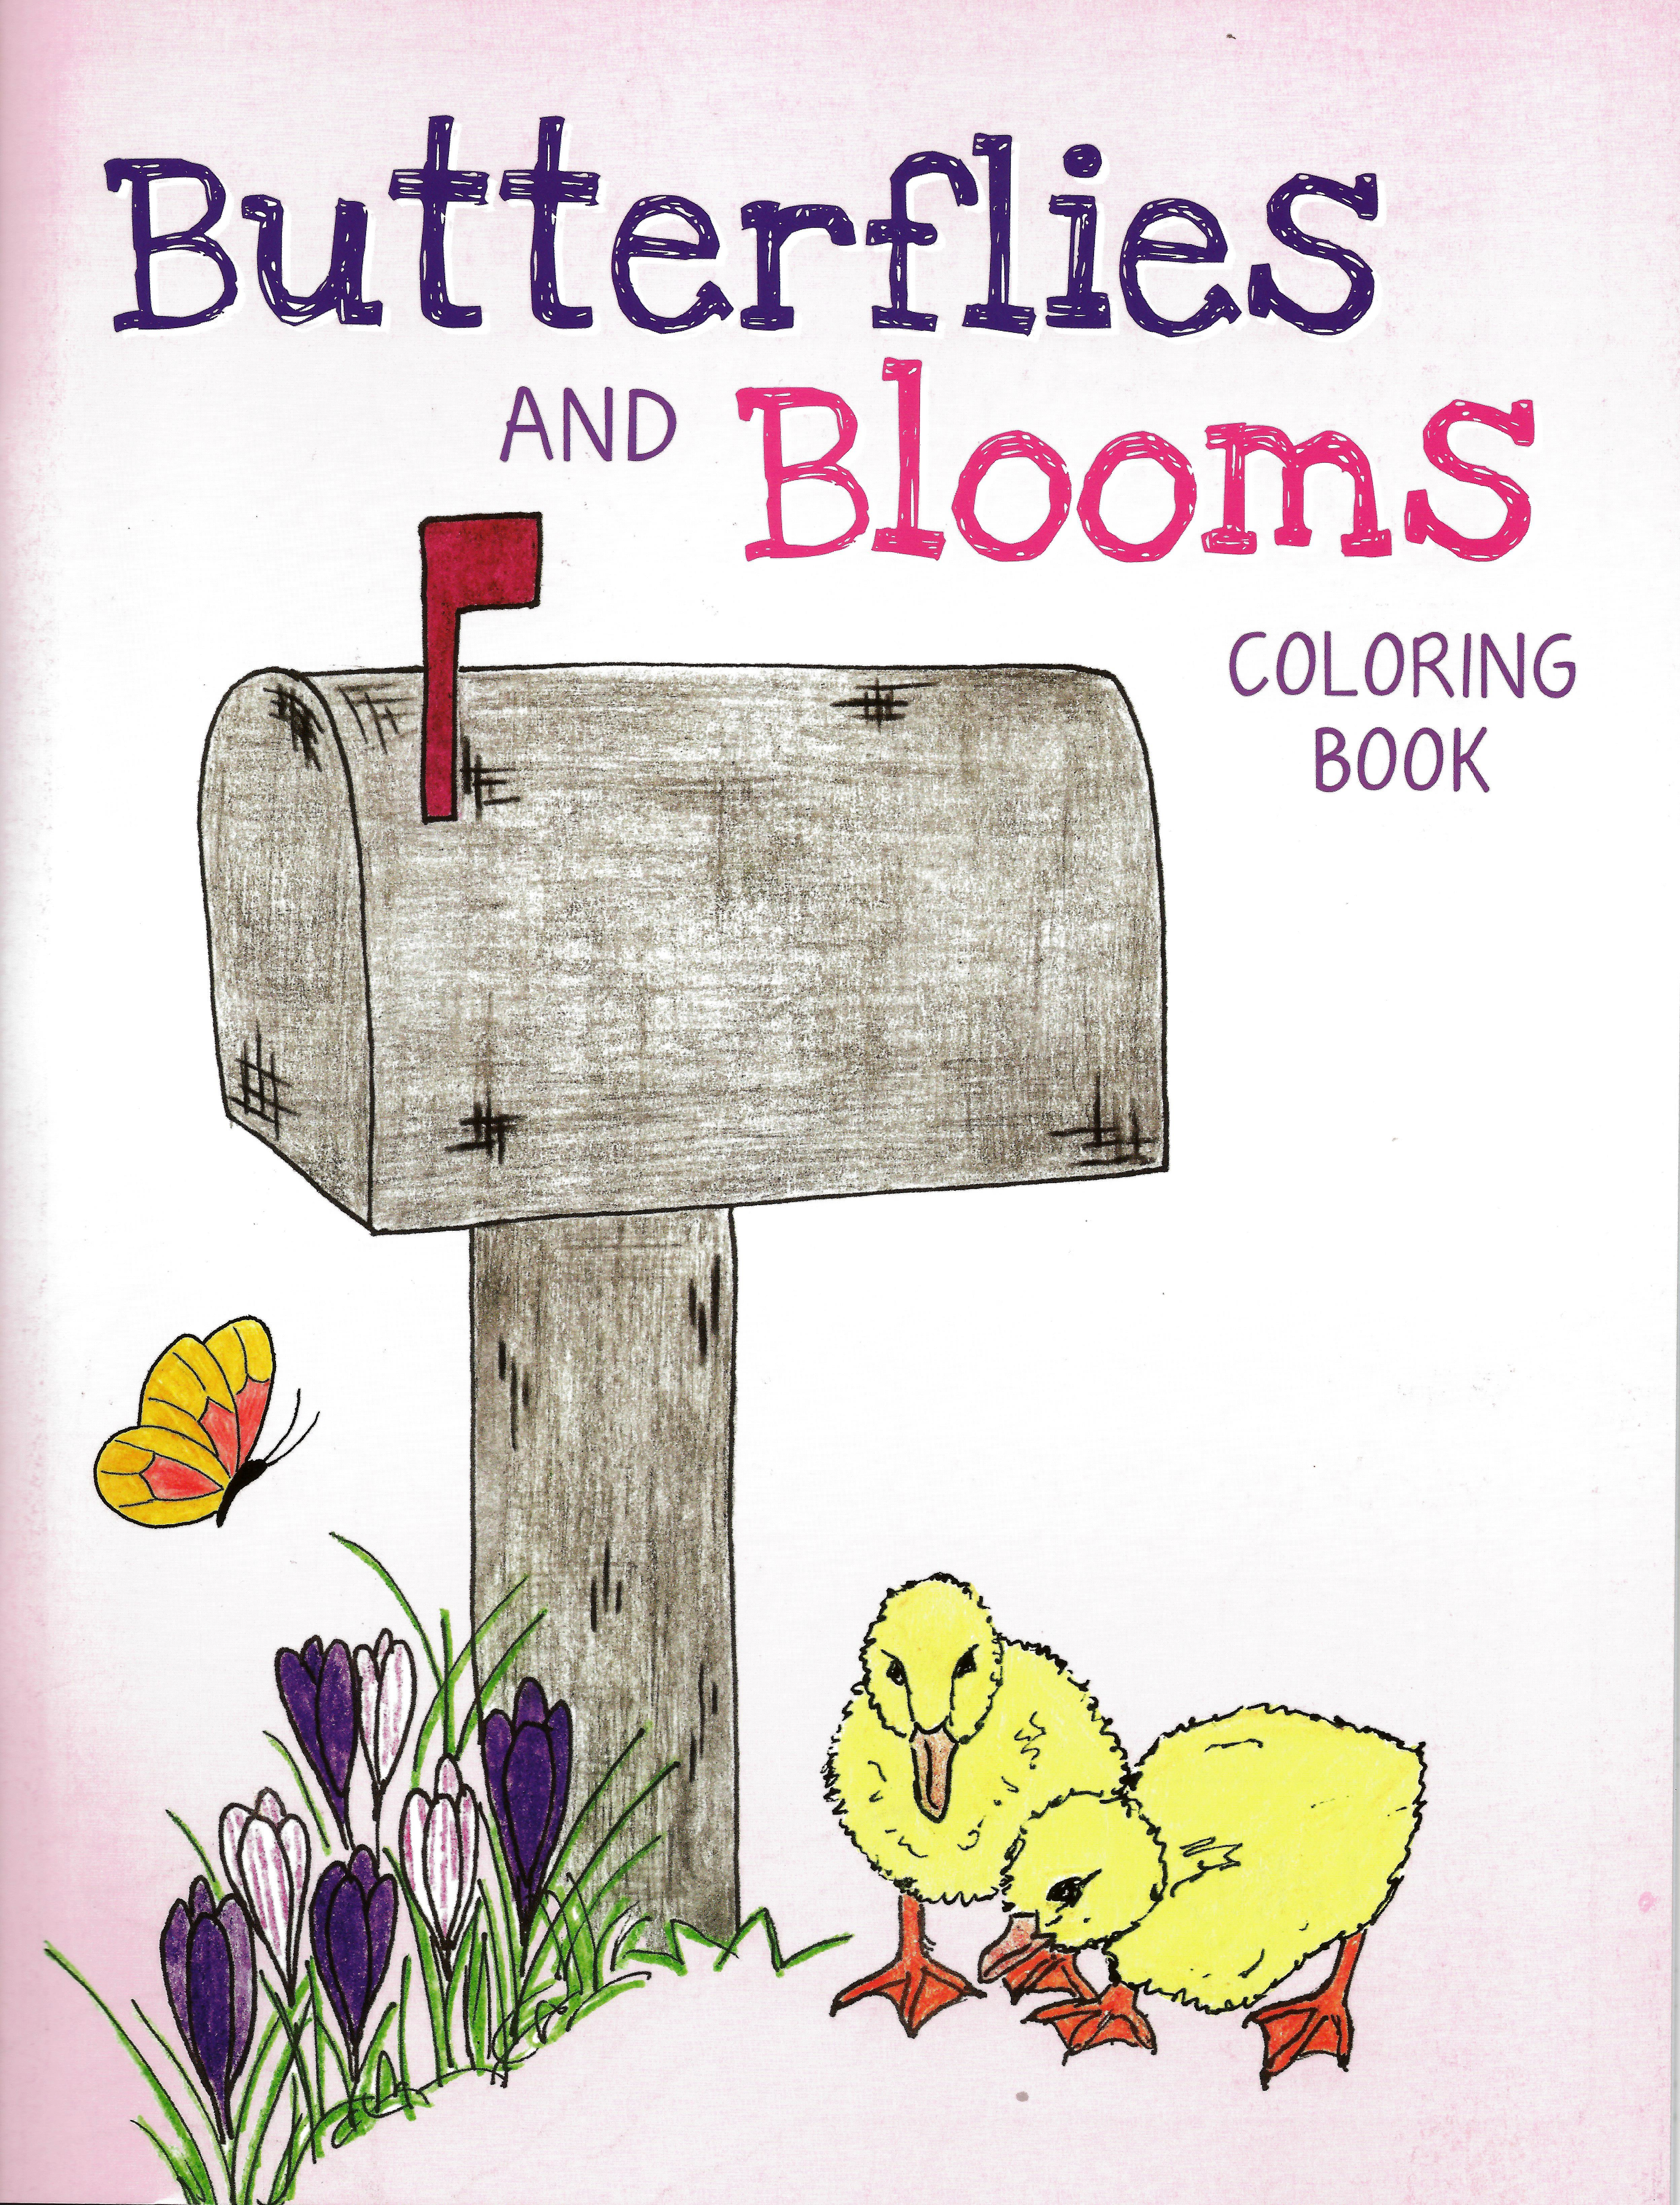 Butterflies and Blooms Coloring Book